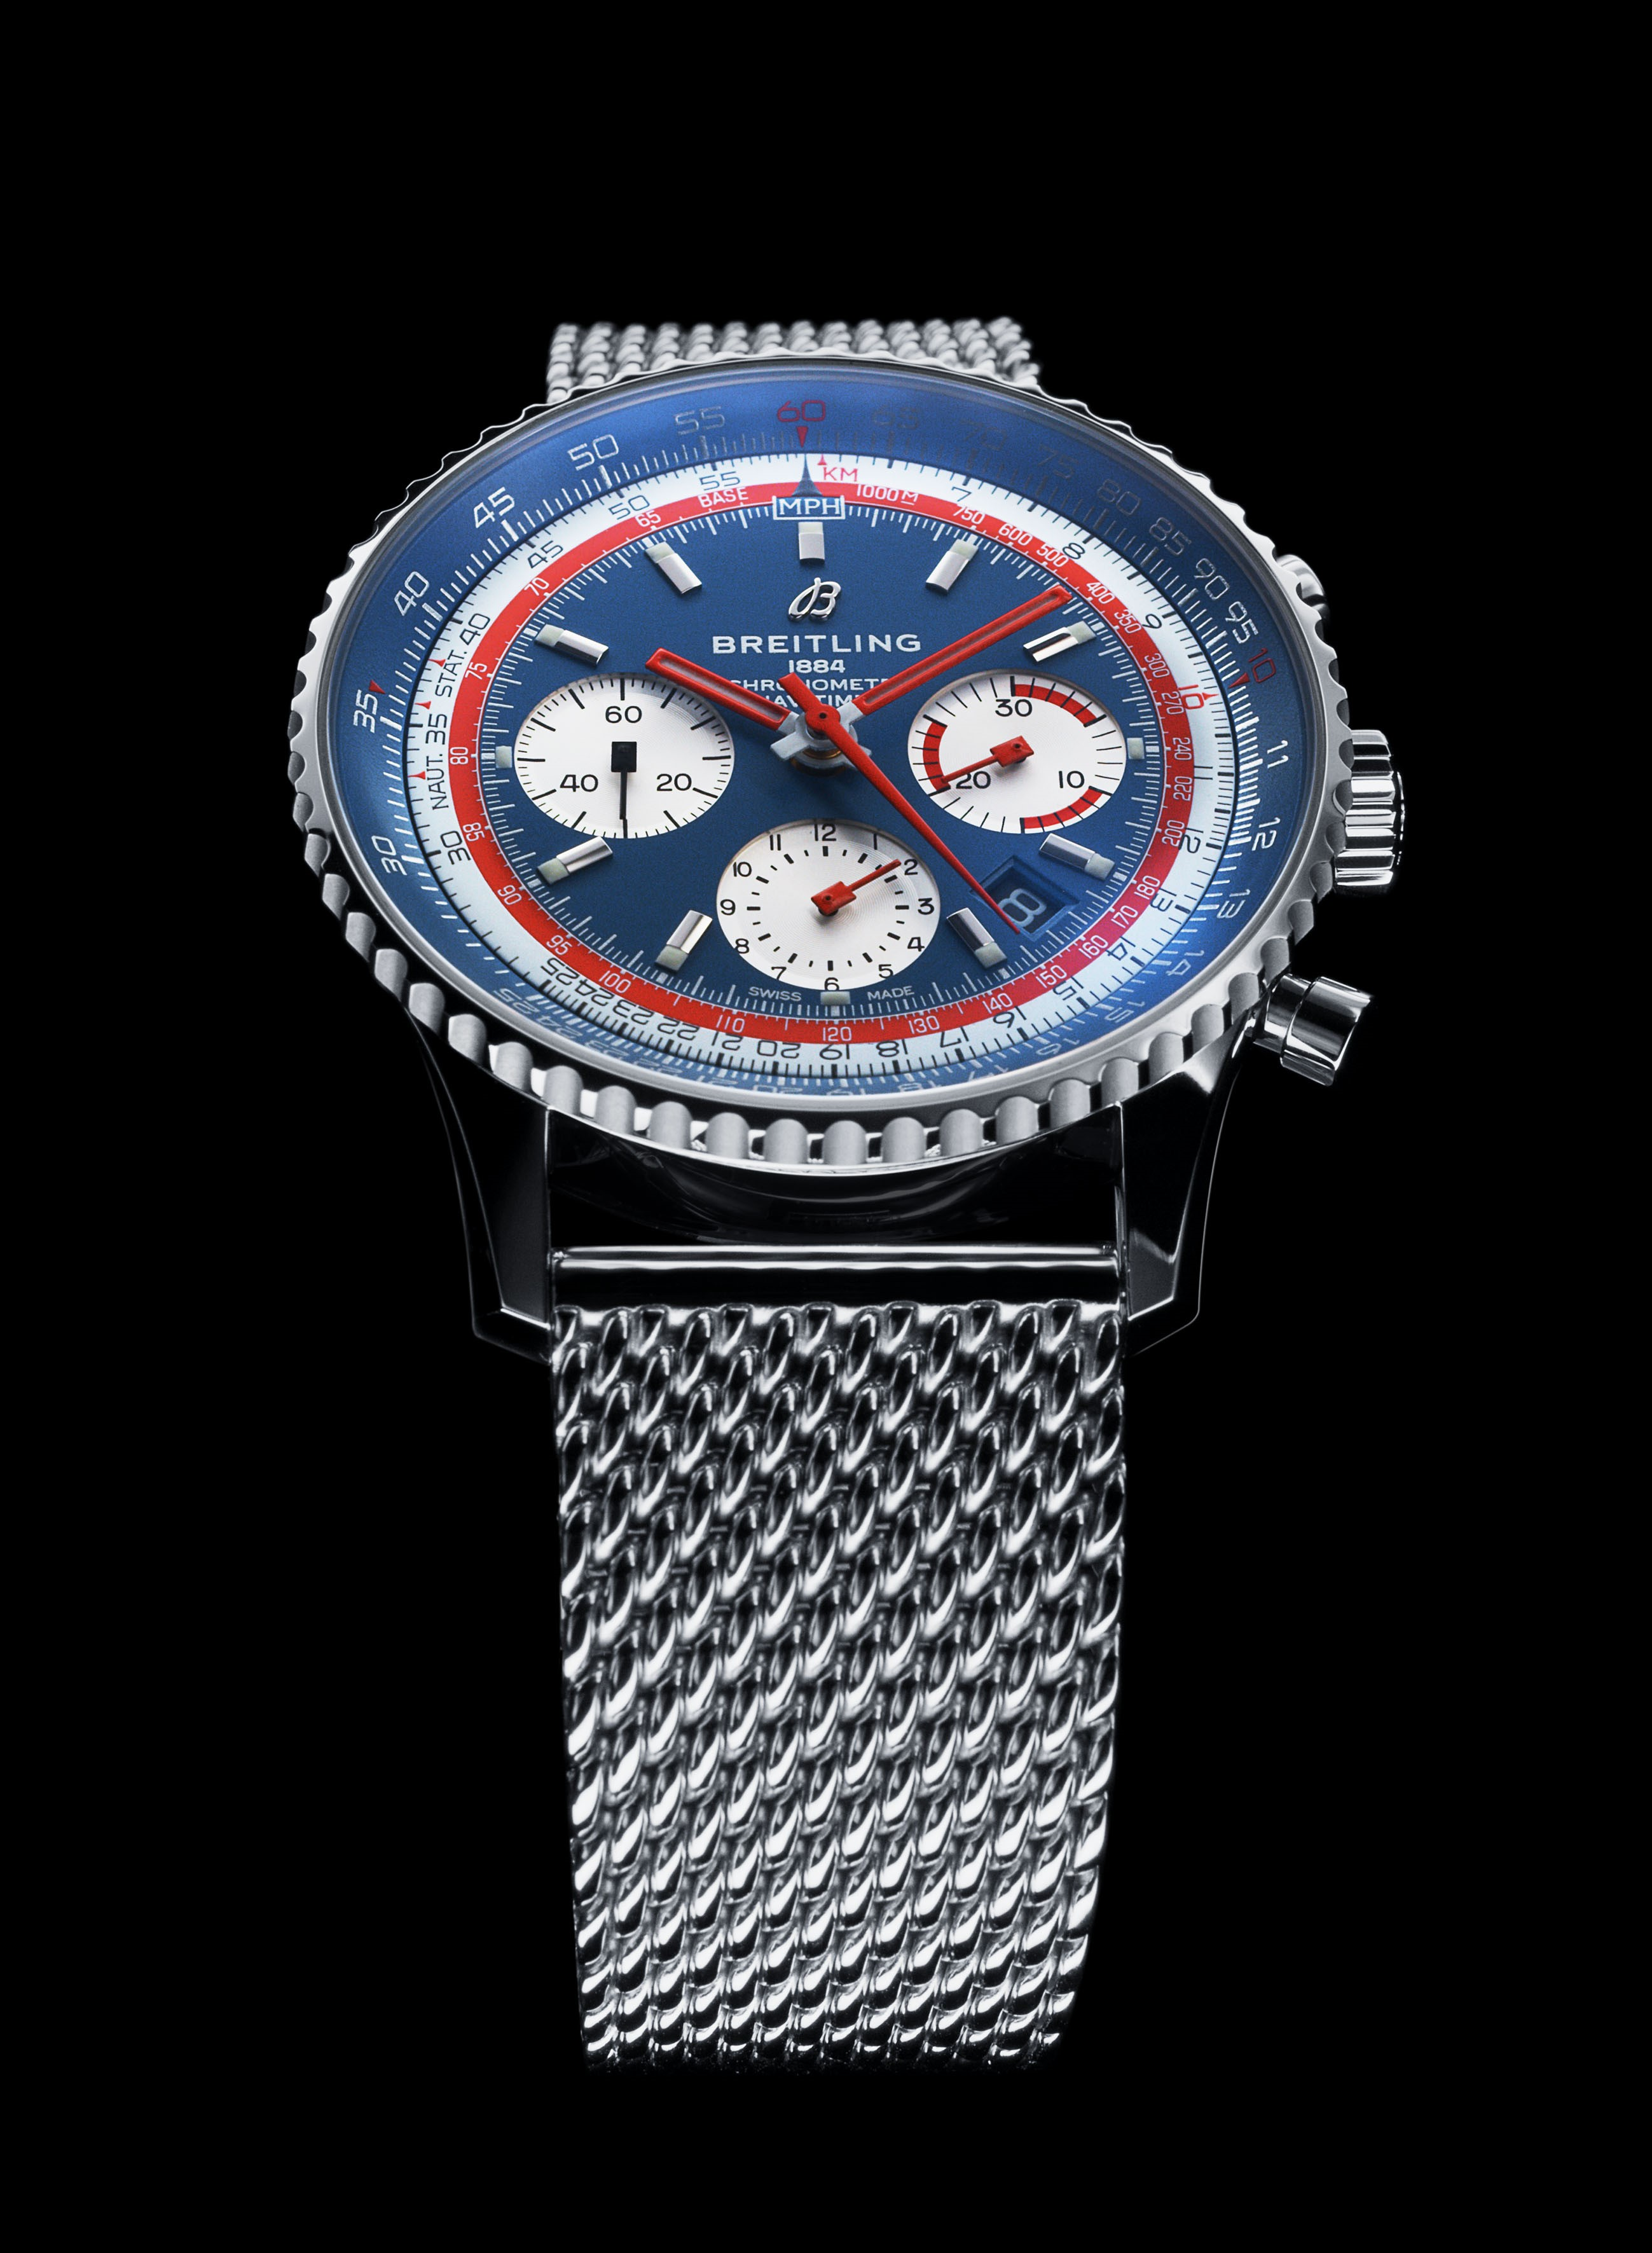 Navitimer 1 B01 Chronograph 42 Pan Am Edition with blue dial and a stainless steel mesh-bracelet (PPR/Breitling)